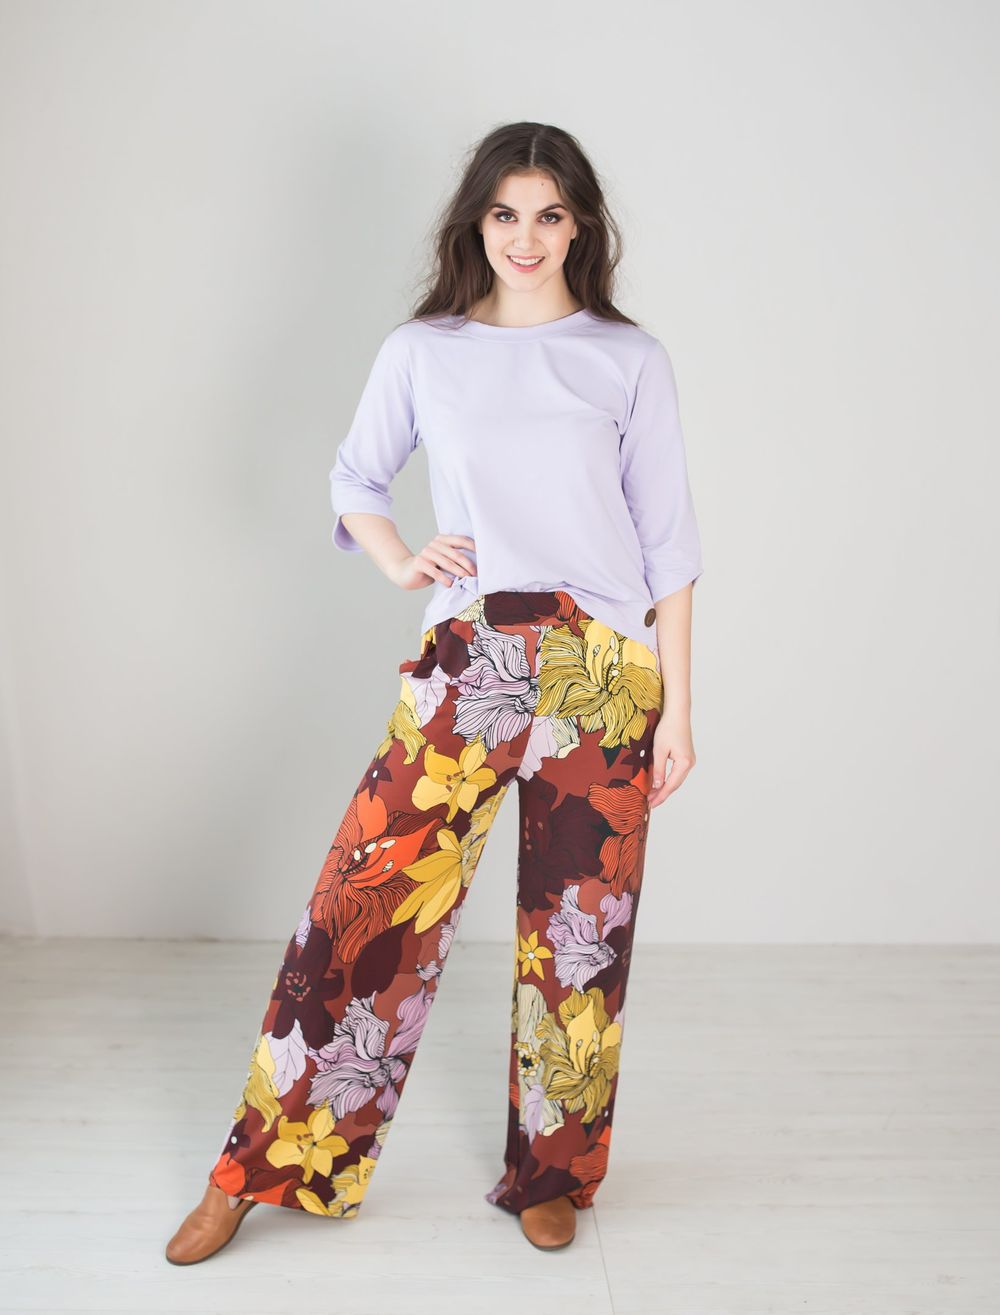 LUGO Pants, Flower Field, normal inner lenght of the leg 78cm